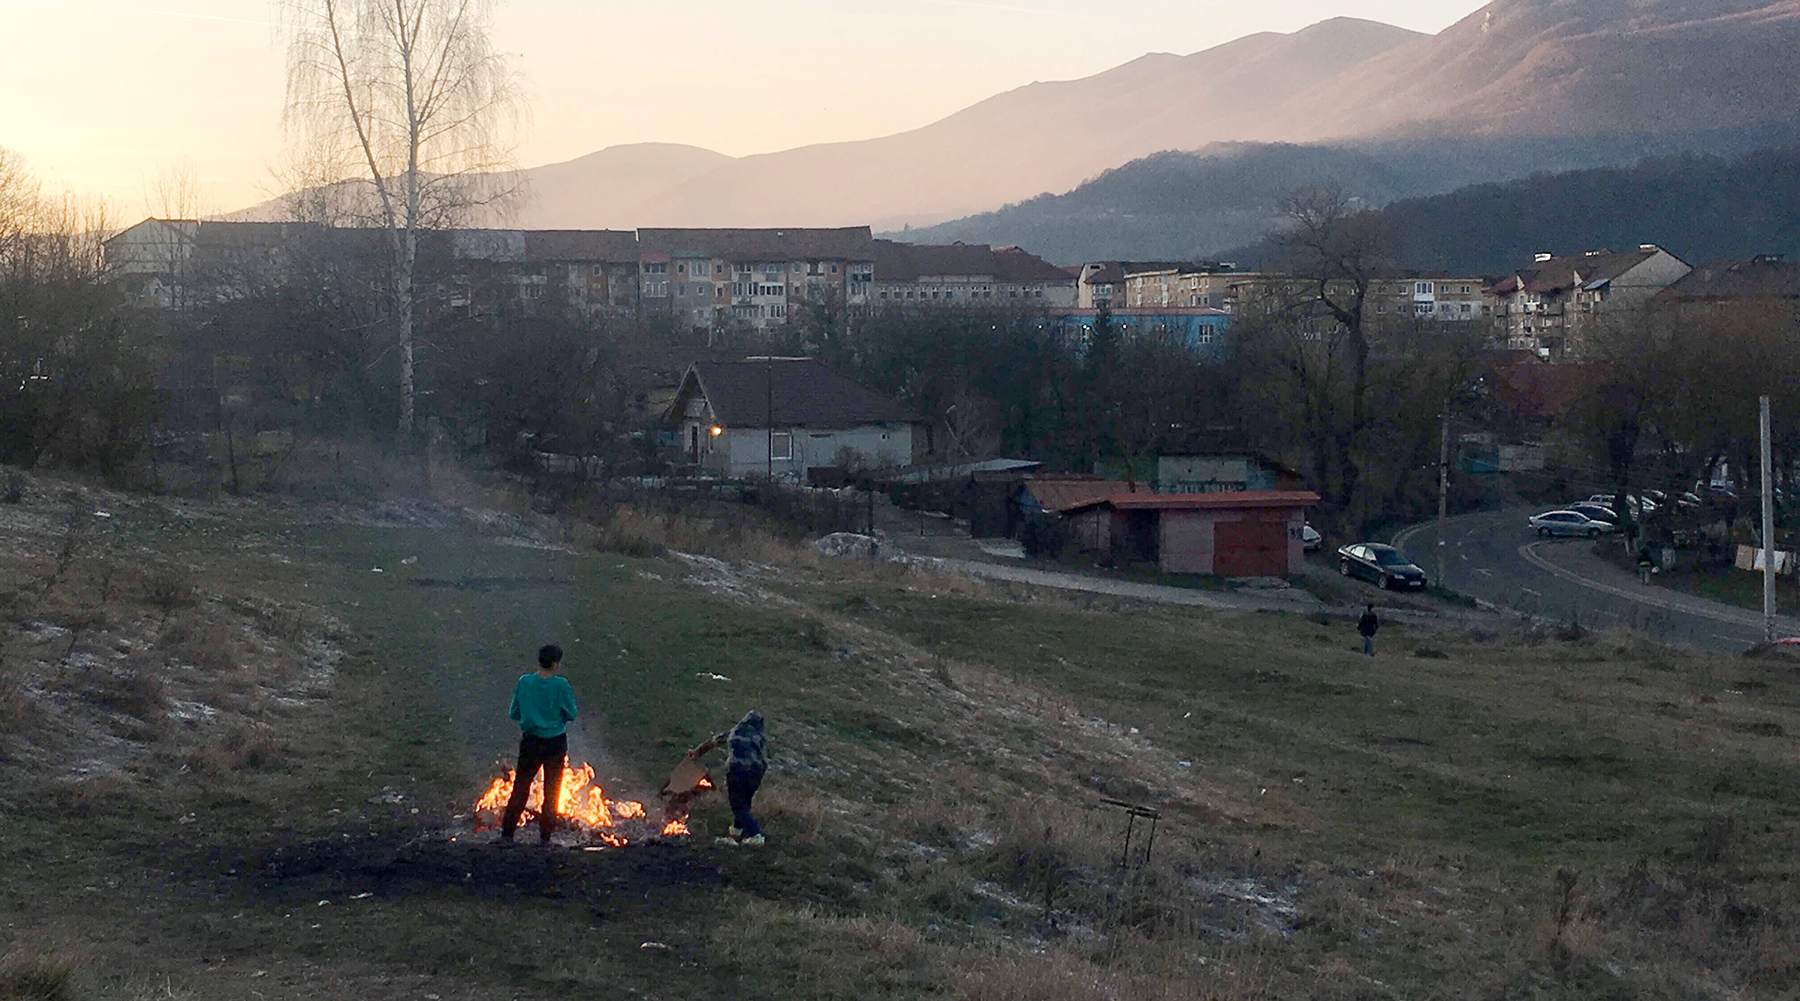 Two boys stand near a bonfire on a grassy hillside. Apartment buildings and mountains tower in the background.